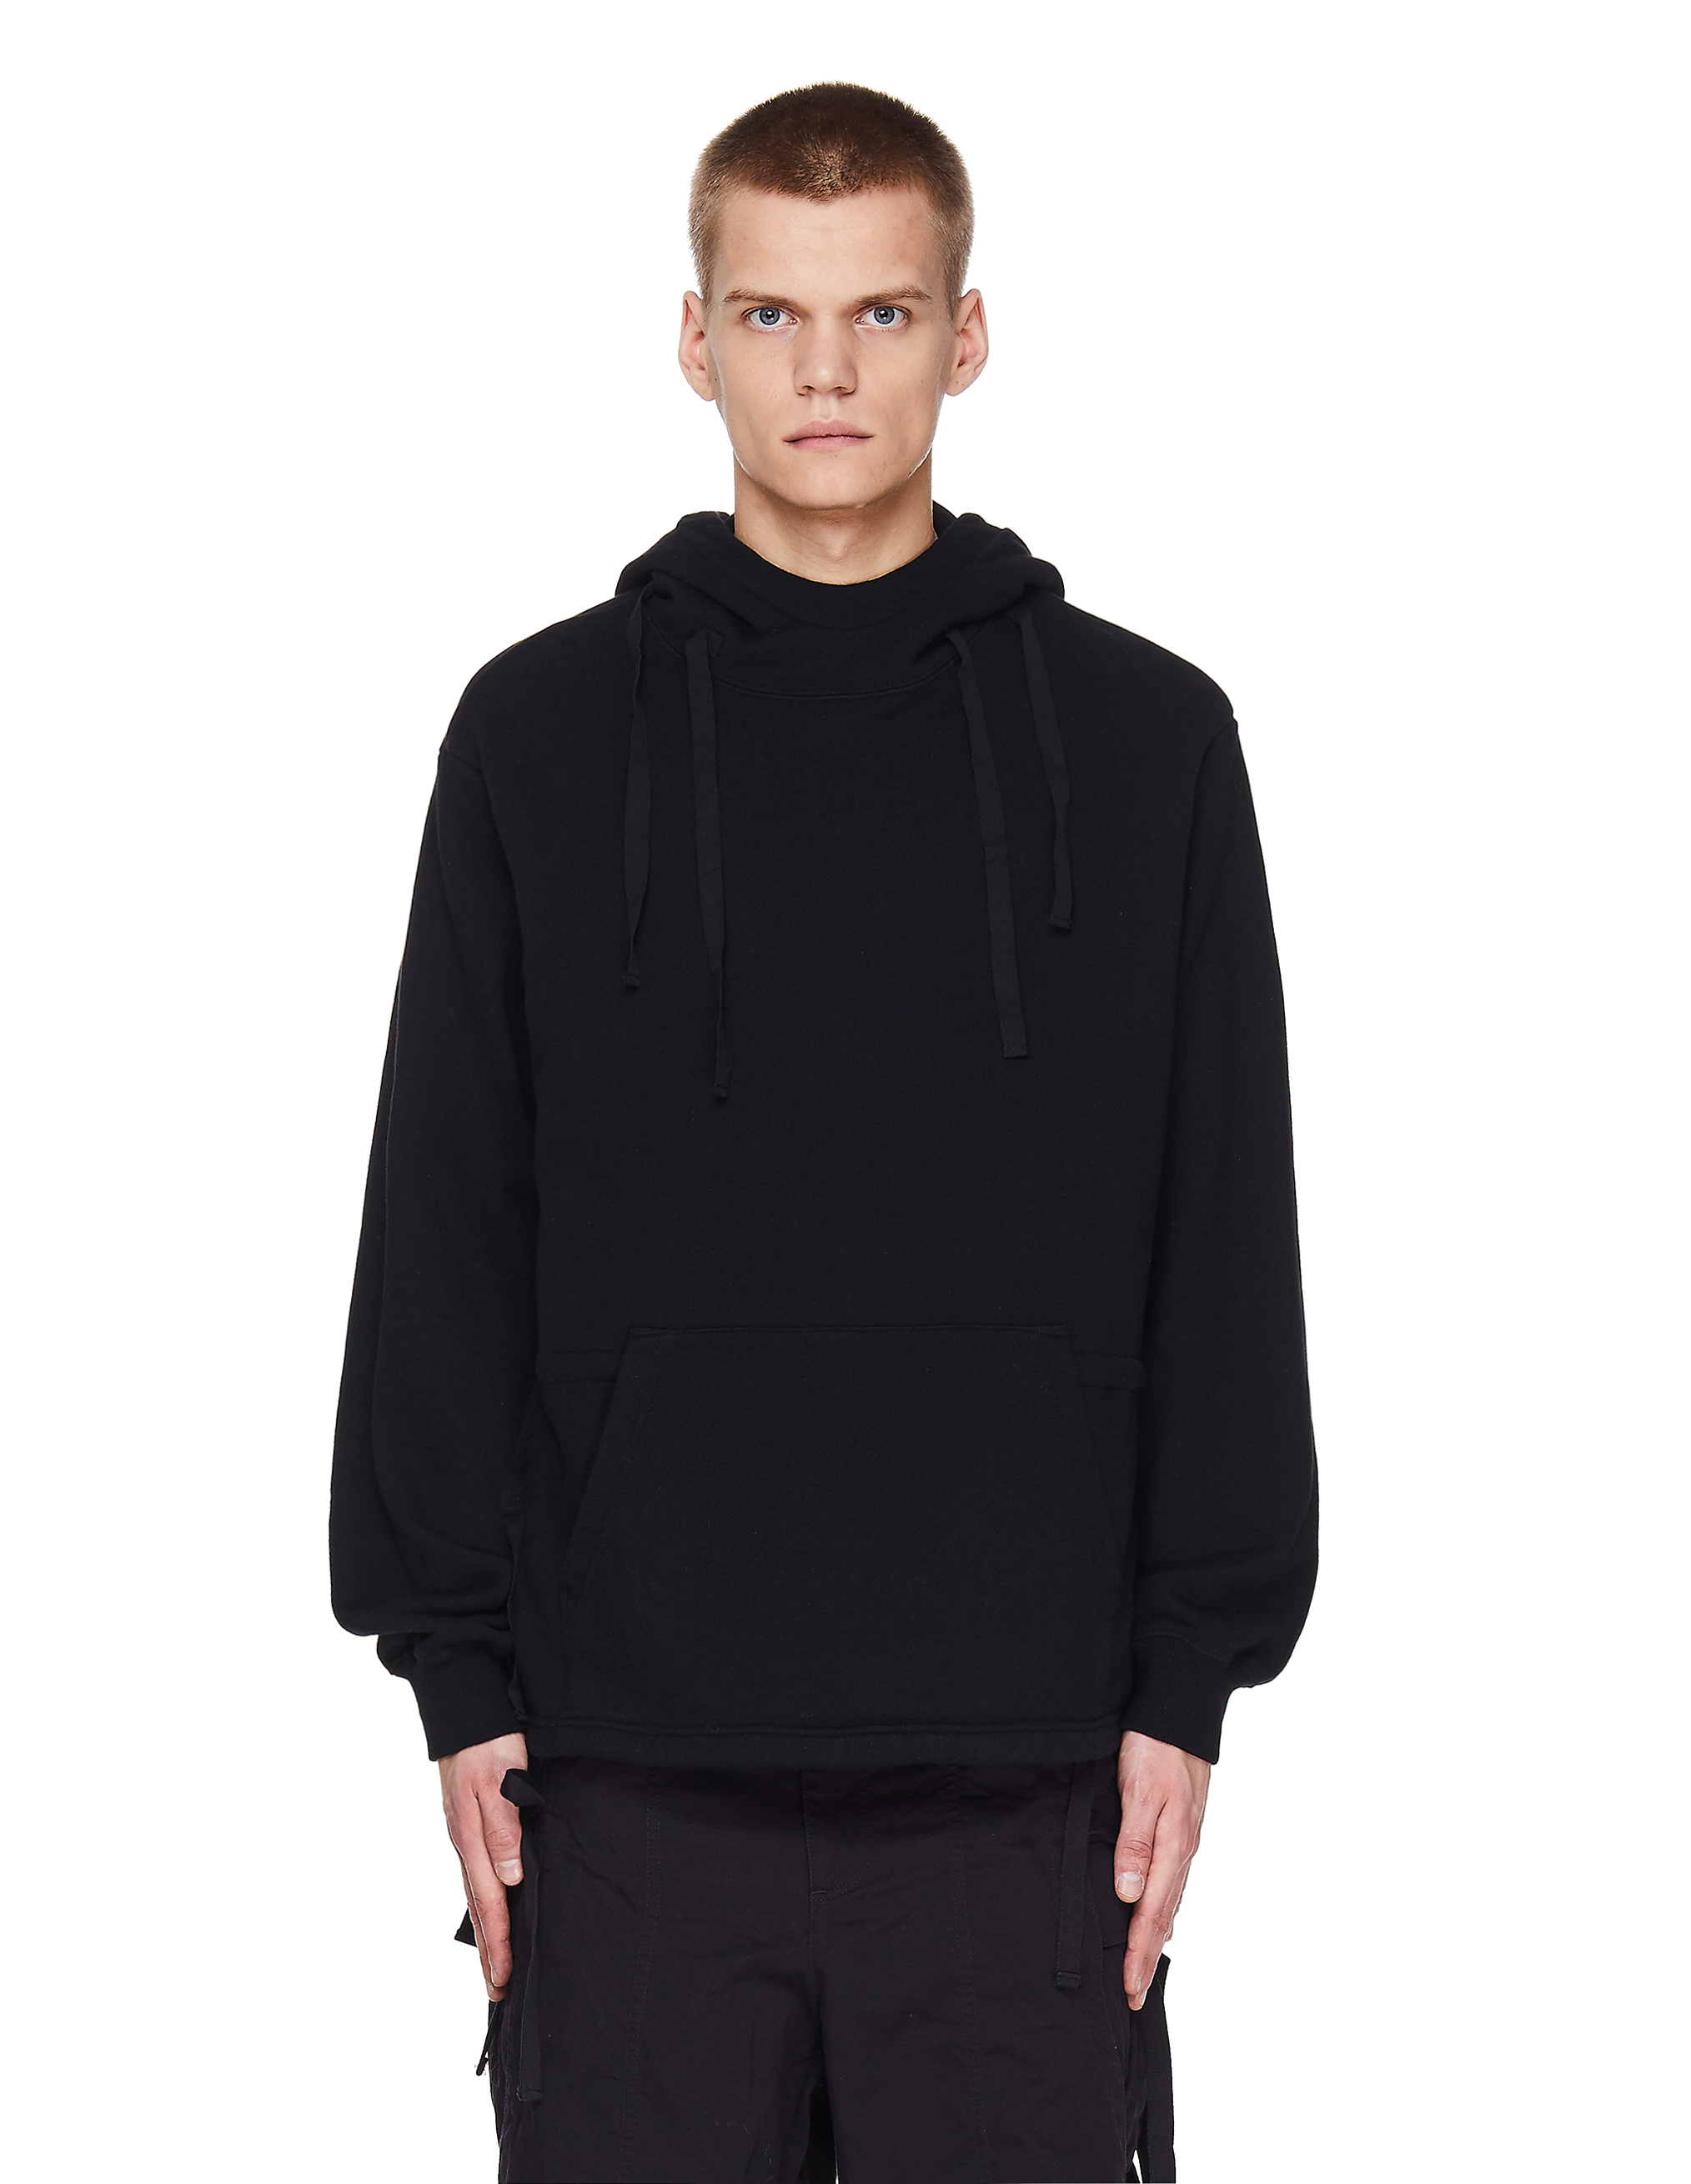 Undercover Black Cotton Printed Hoodie